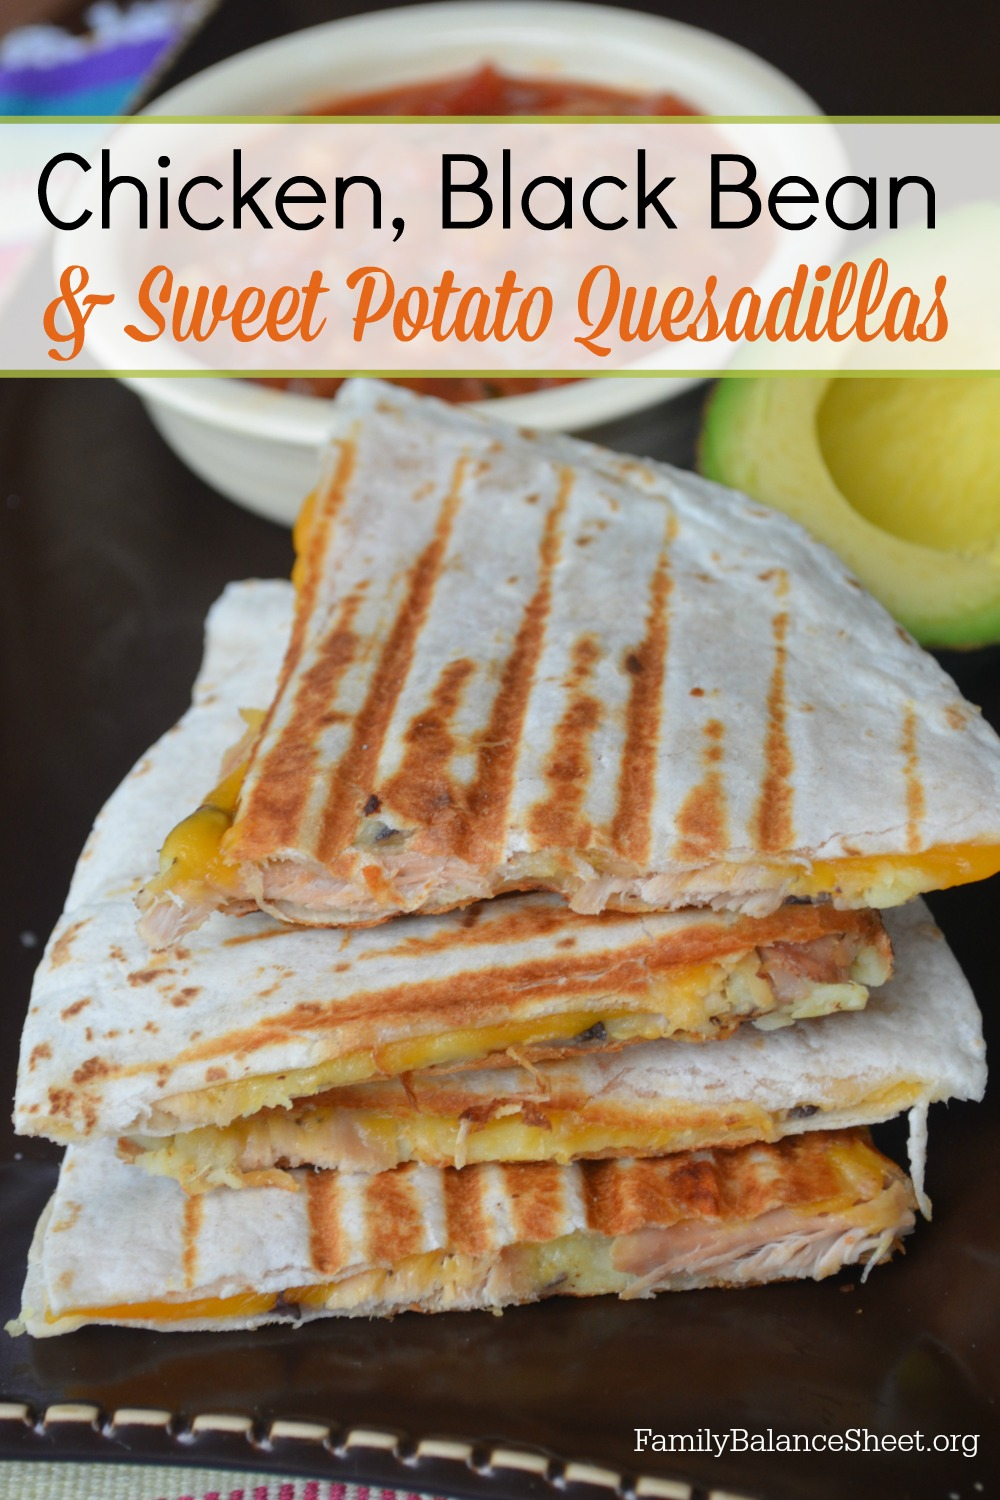 Chicken Black Bean & Sweet Potato Quesadillas